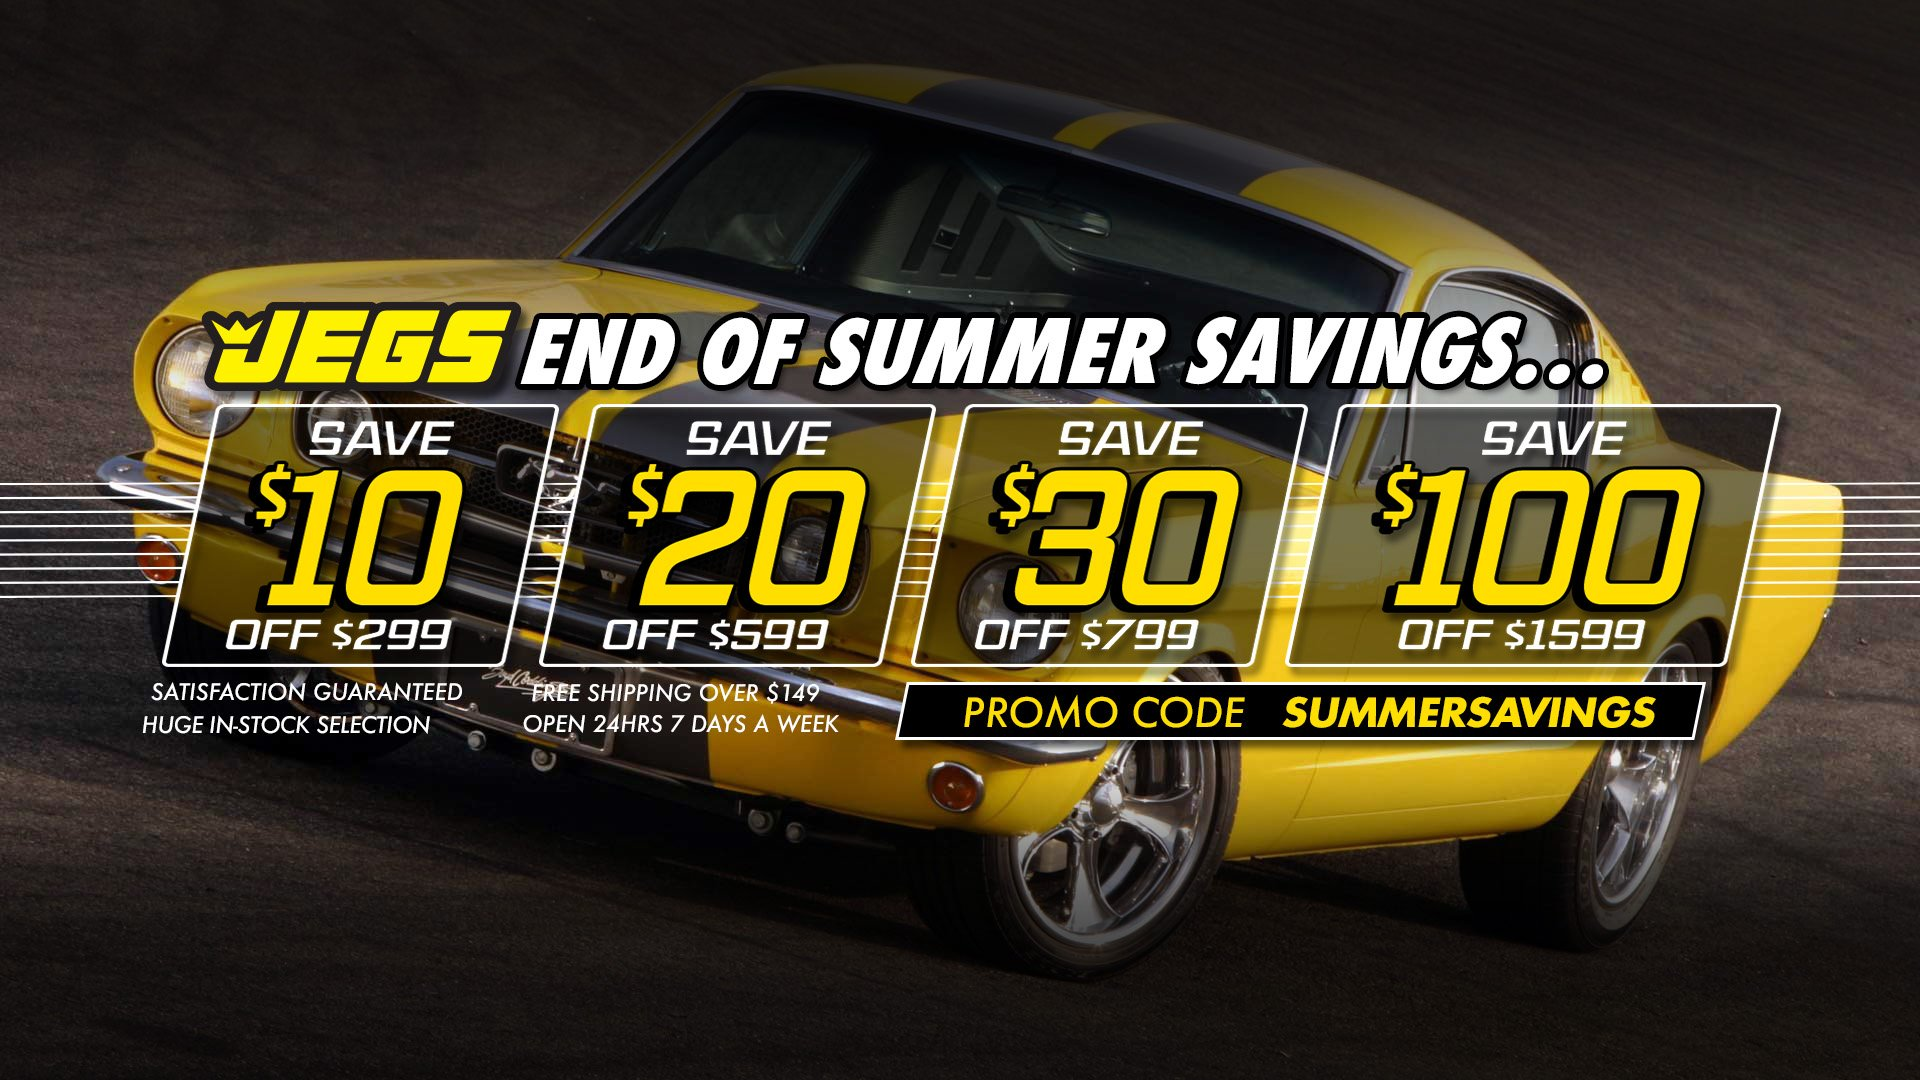 Save $10 off $299, $20 off $599, $30 off $799, $100 off $1,599 - Promo Code SUMMERSAVINGS